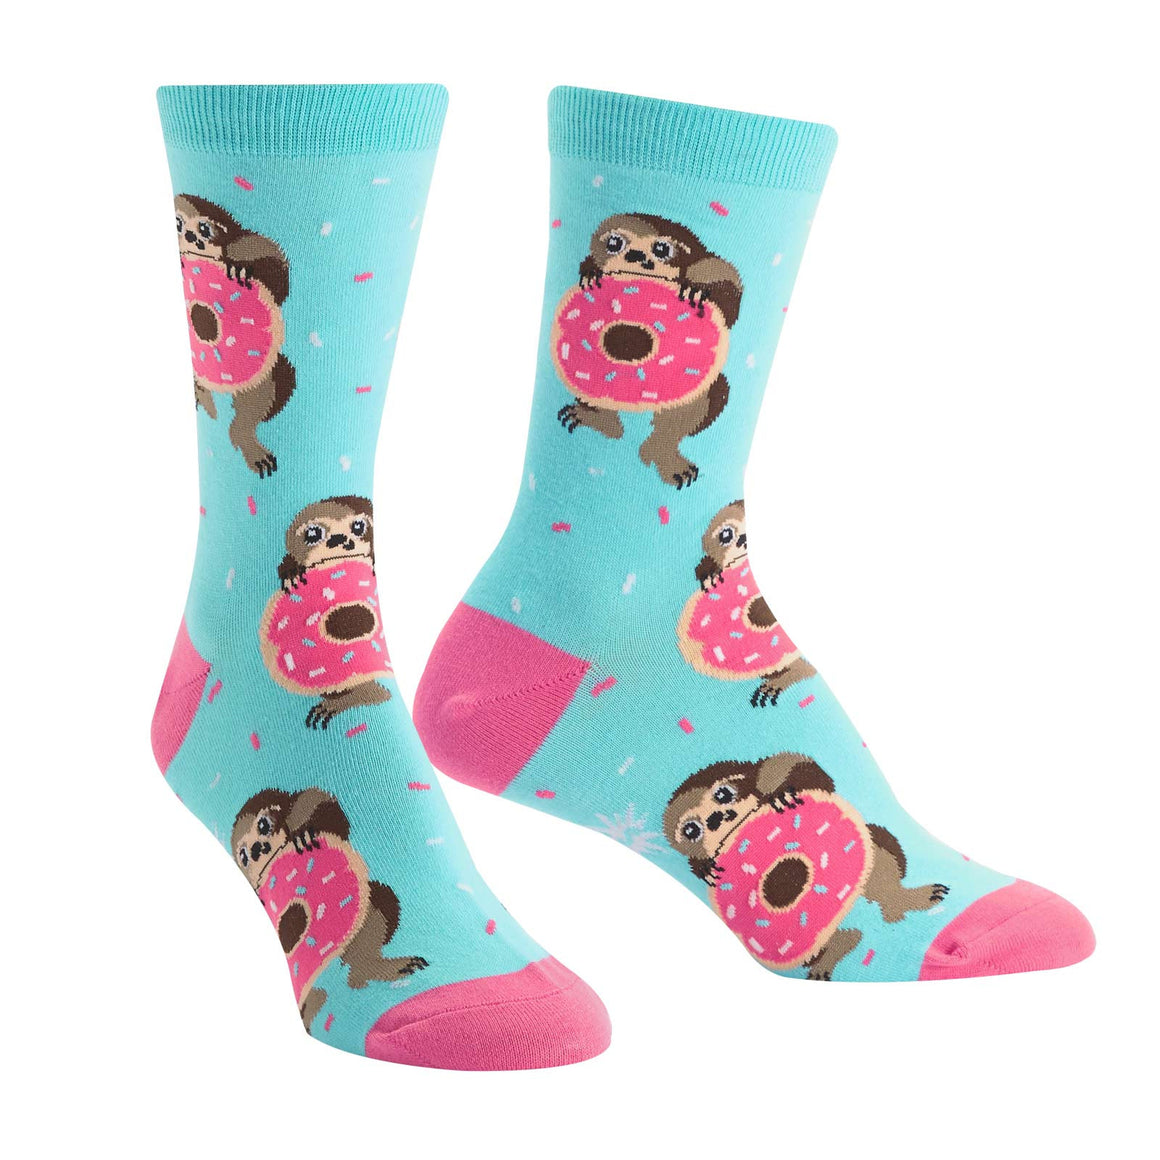 Hungry sloths latch onto sprinkle donuts with pink frosting on this blue crew sock for women.